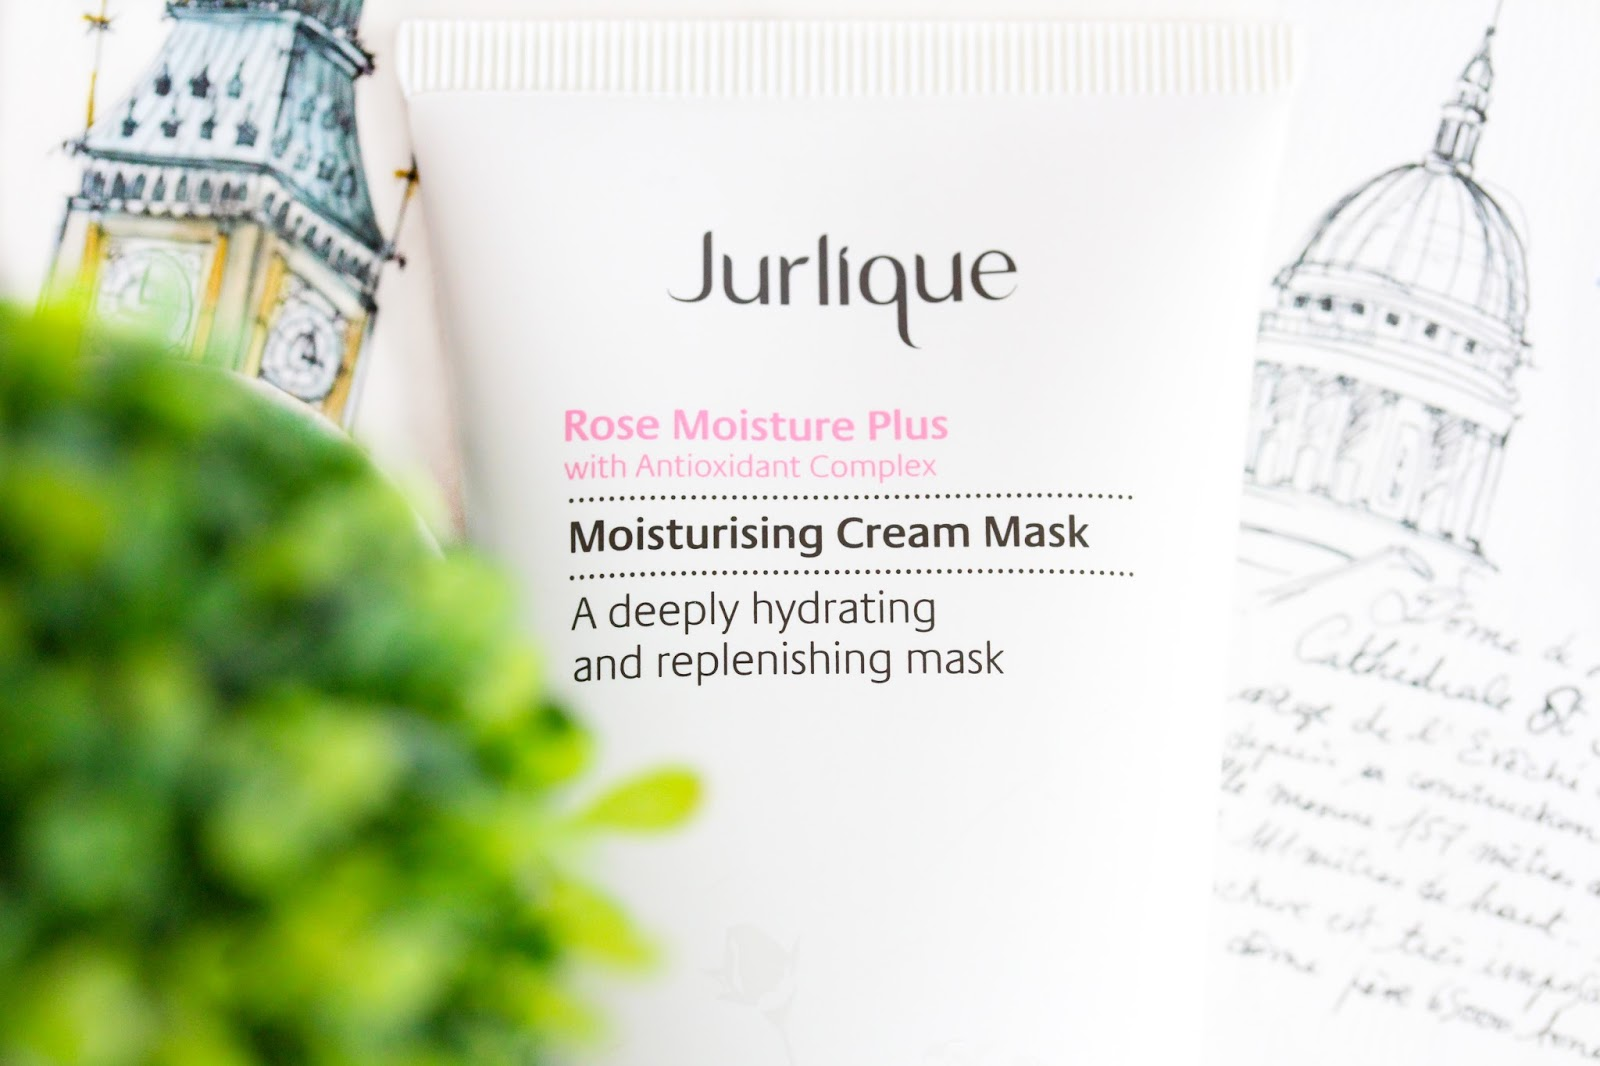 Jurlique Rose Moisture Plus Moisturizing Cream Mask With Antioxidant Complex